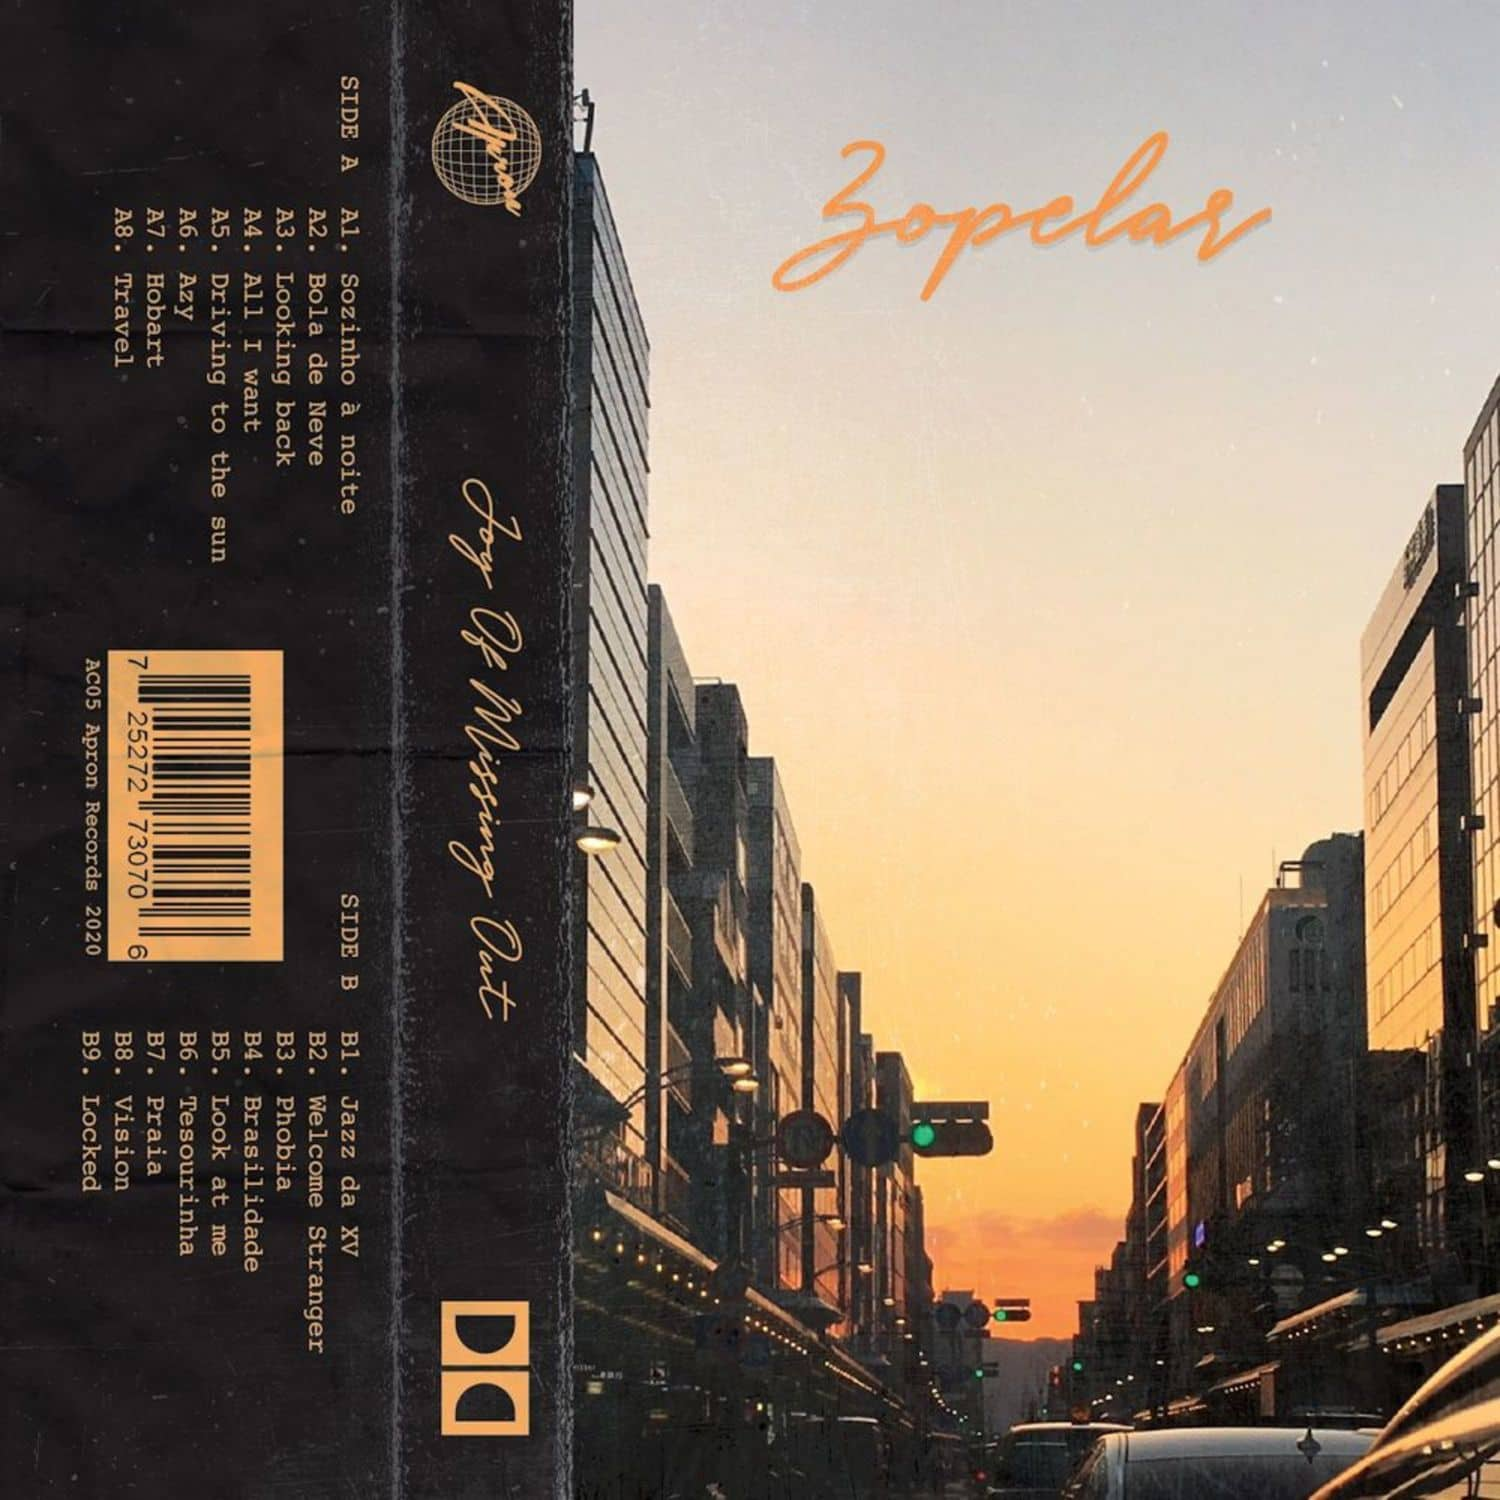 Zopelar - JOY OF MISSING OUT